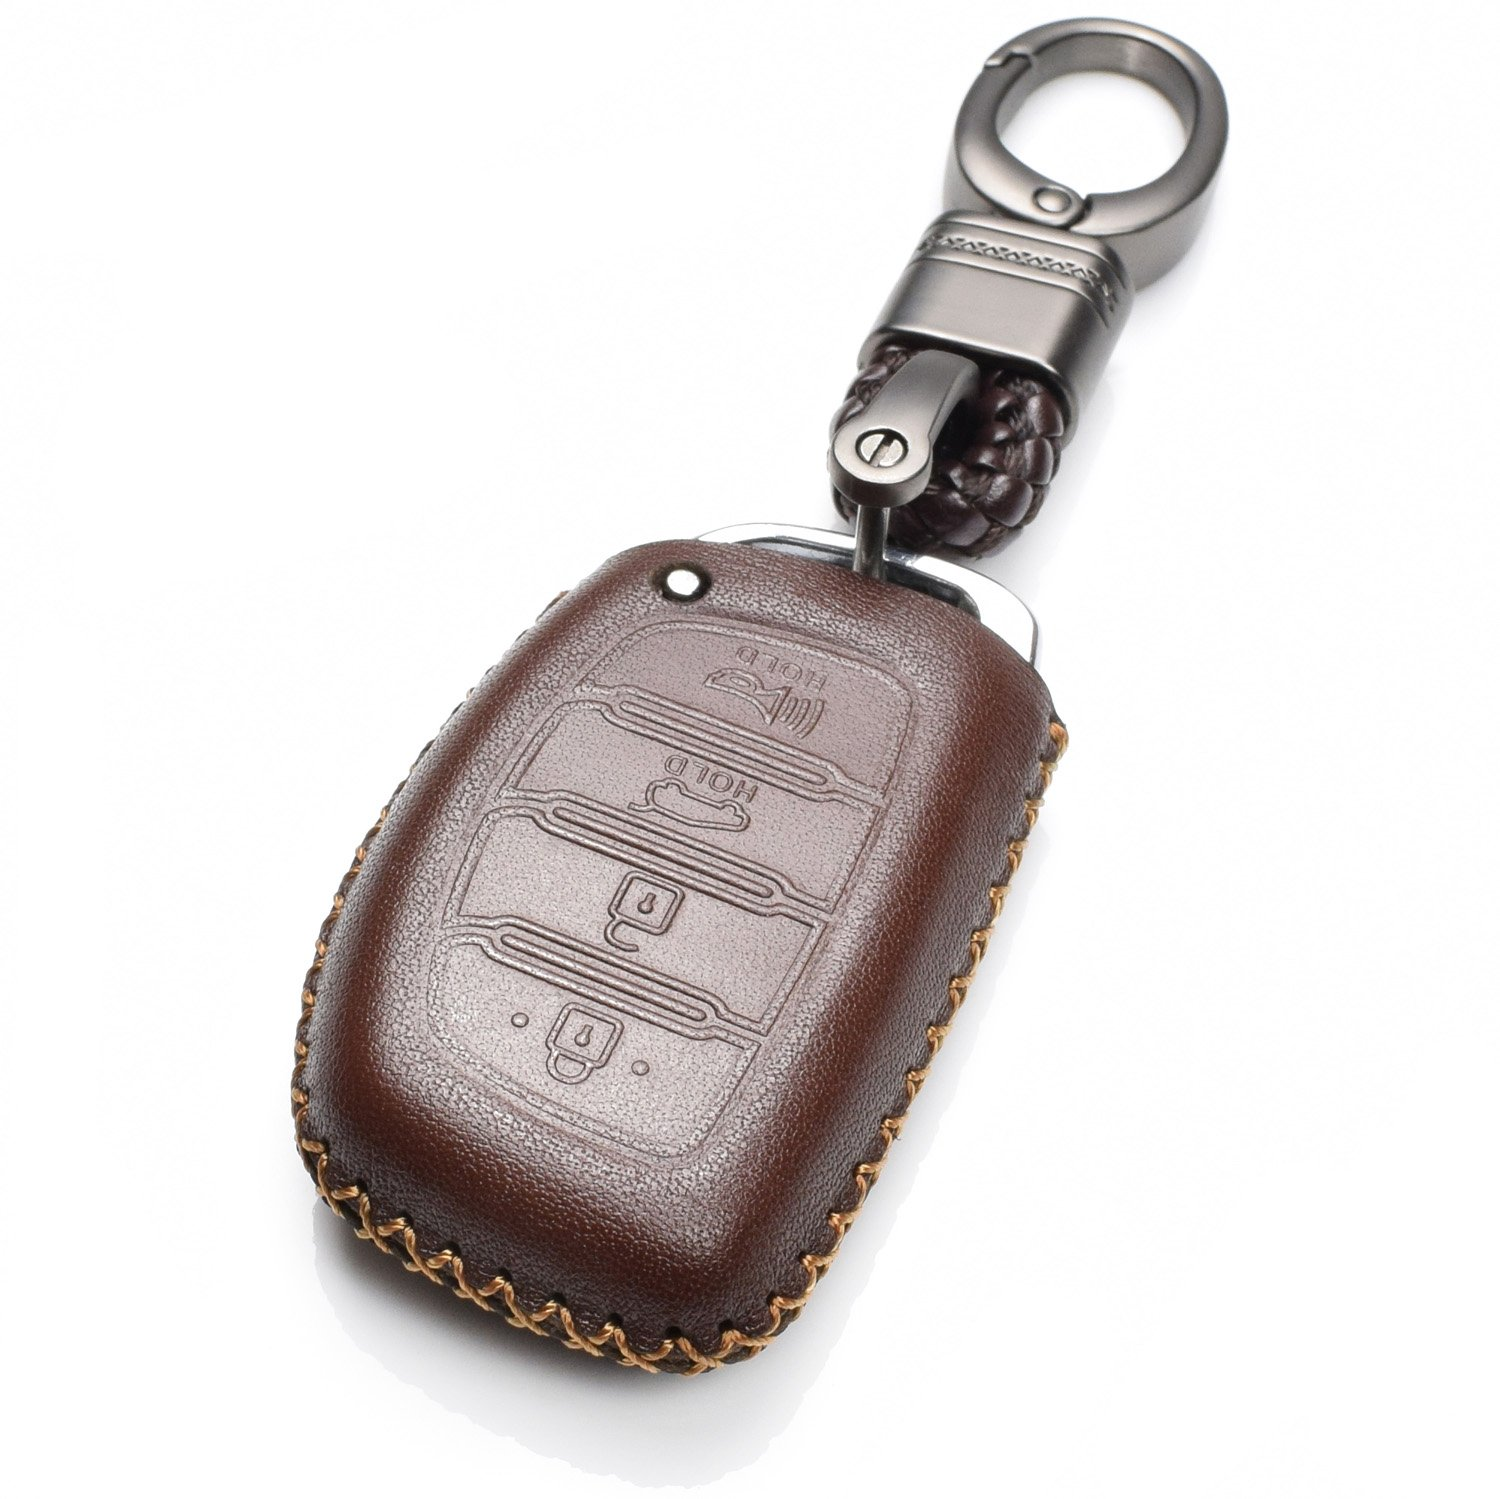 Cheap Sonata Smart Key, find Sonata Smart Key deals on line